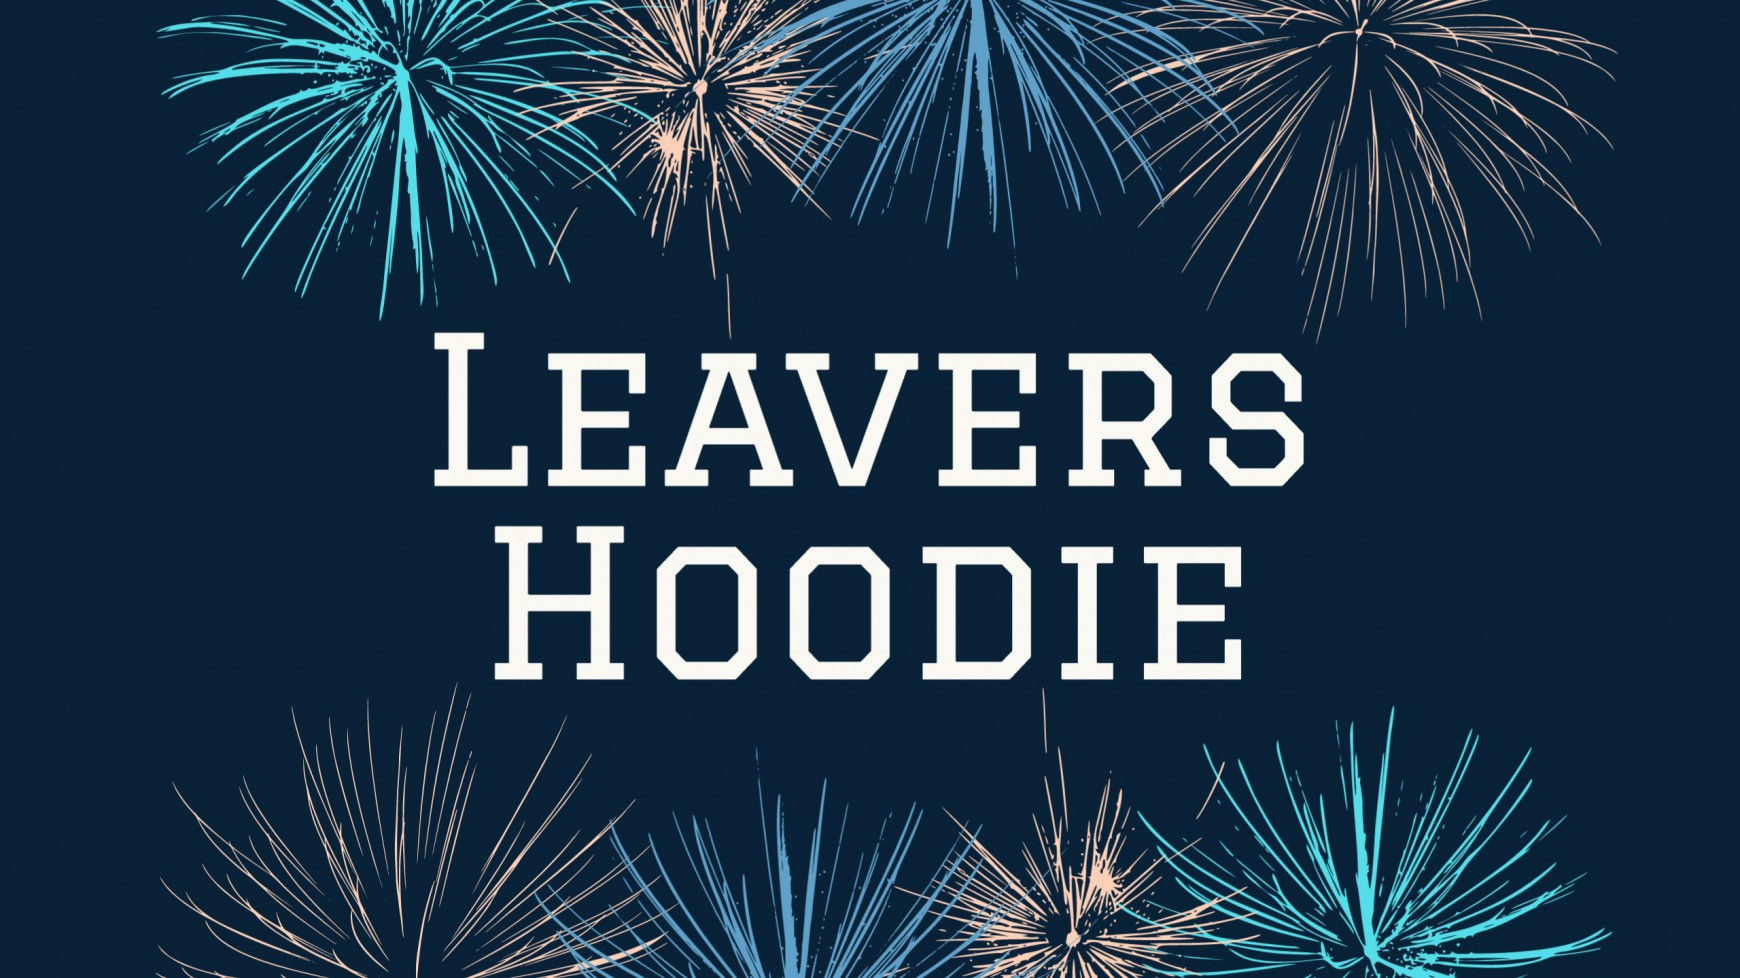 Class of 21 Leavers Hoodie